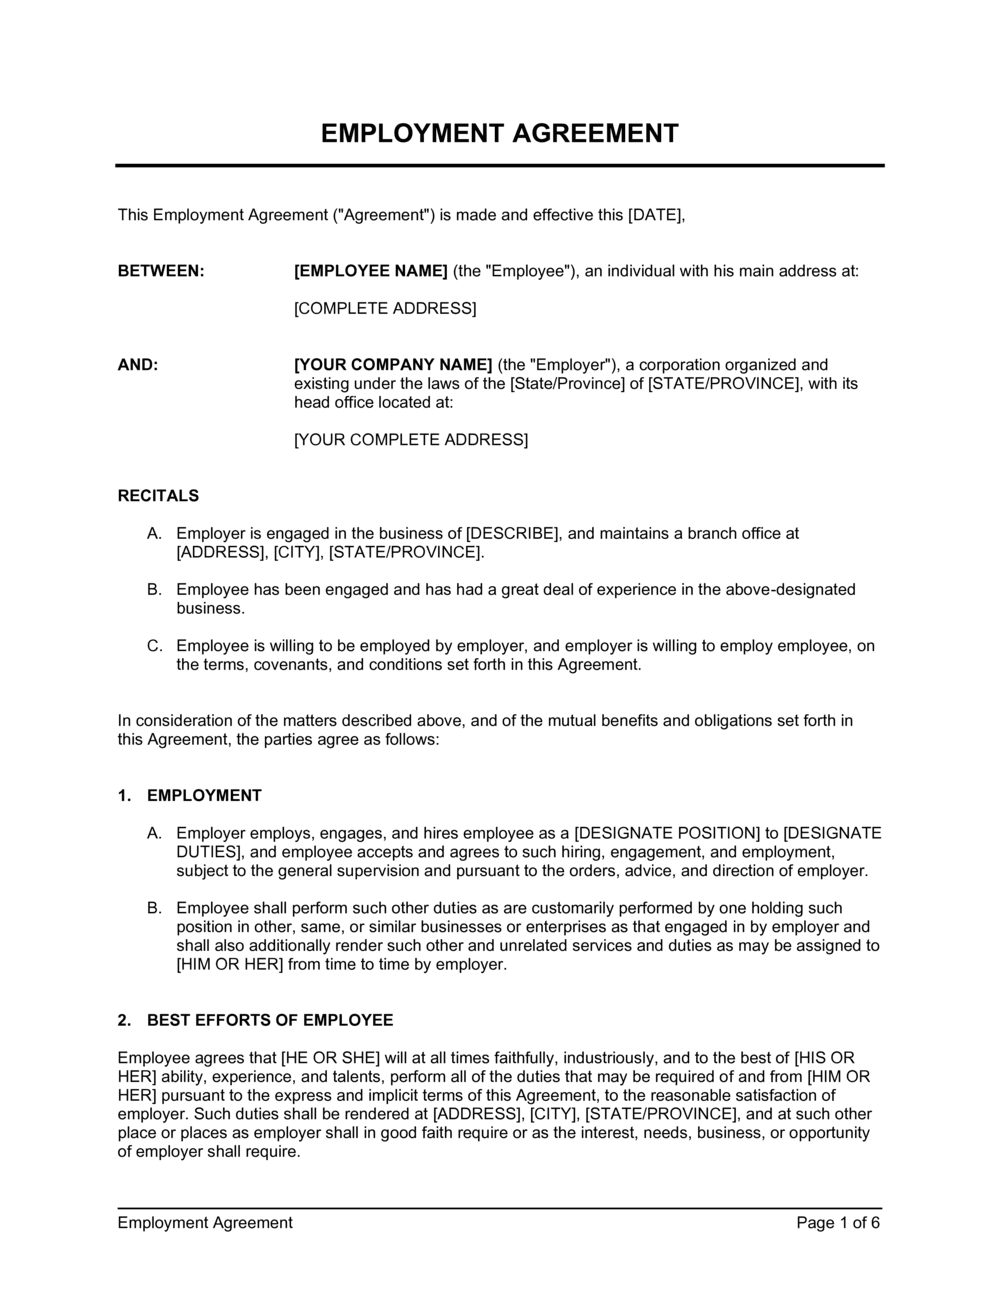 Business-in-a-Box's Employment Agreement Template